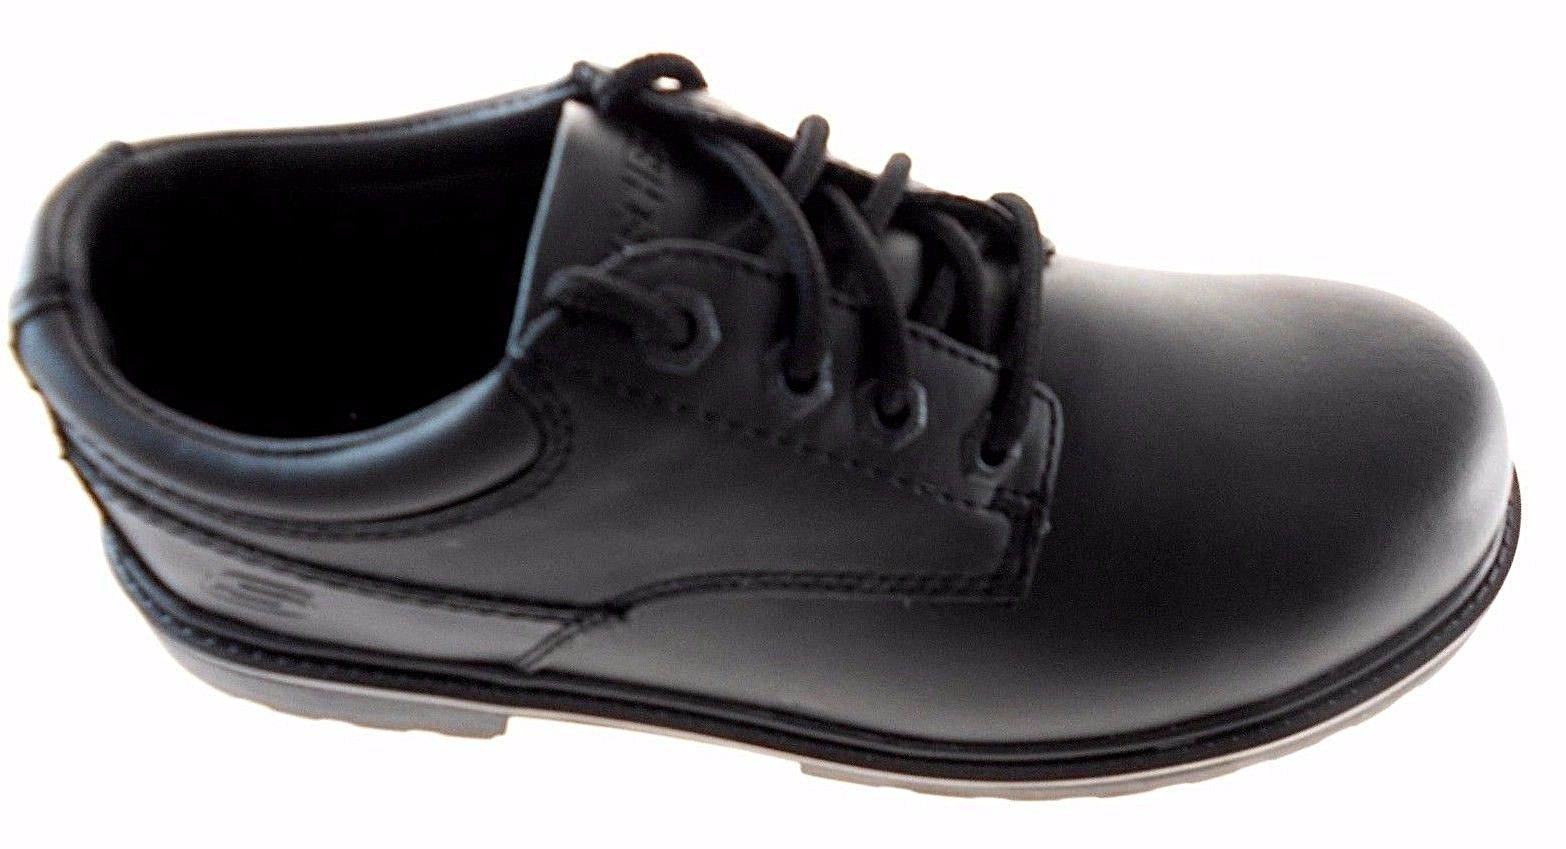 Skechers Kellet Black Leather Oxford Shoes and similar items